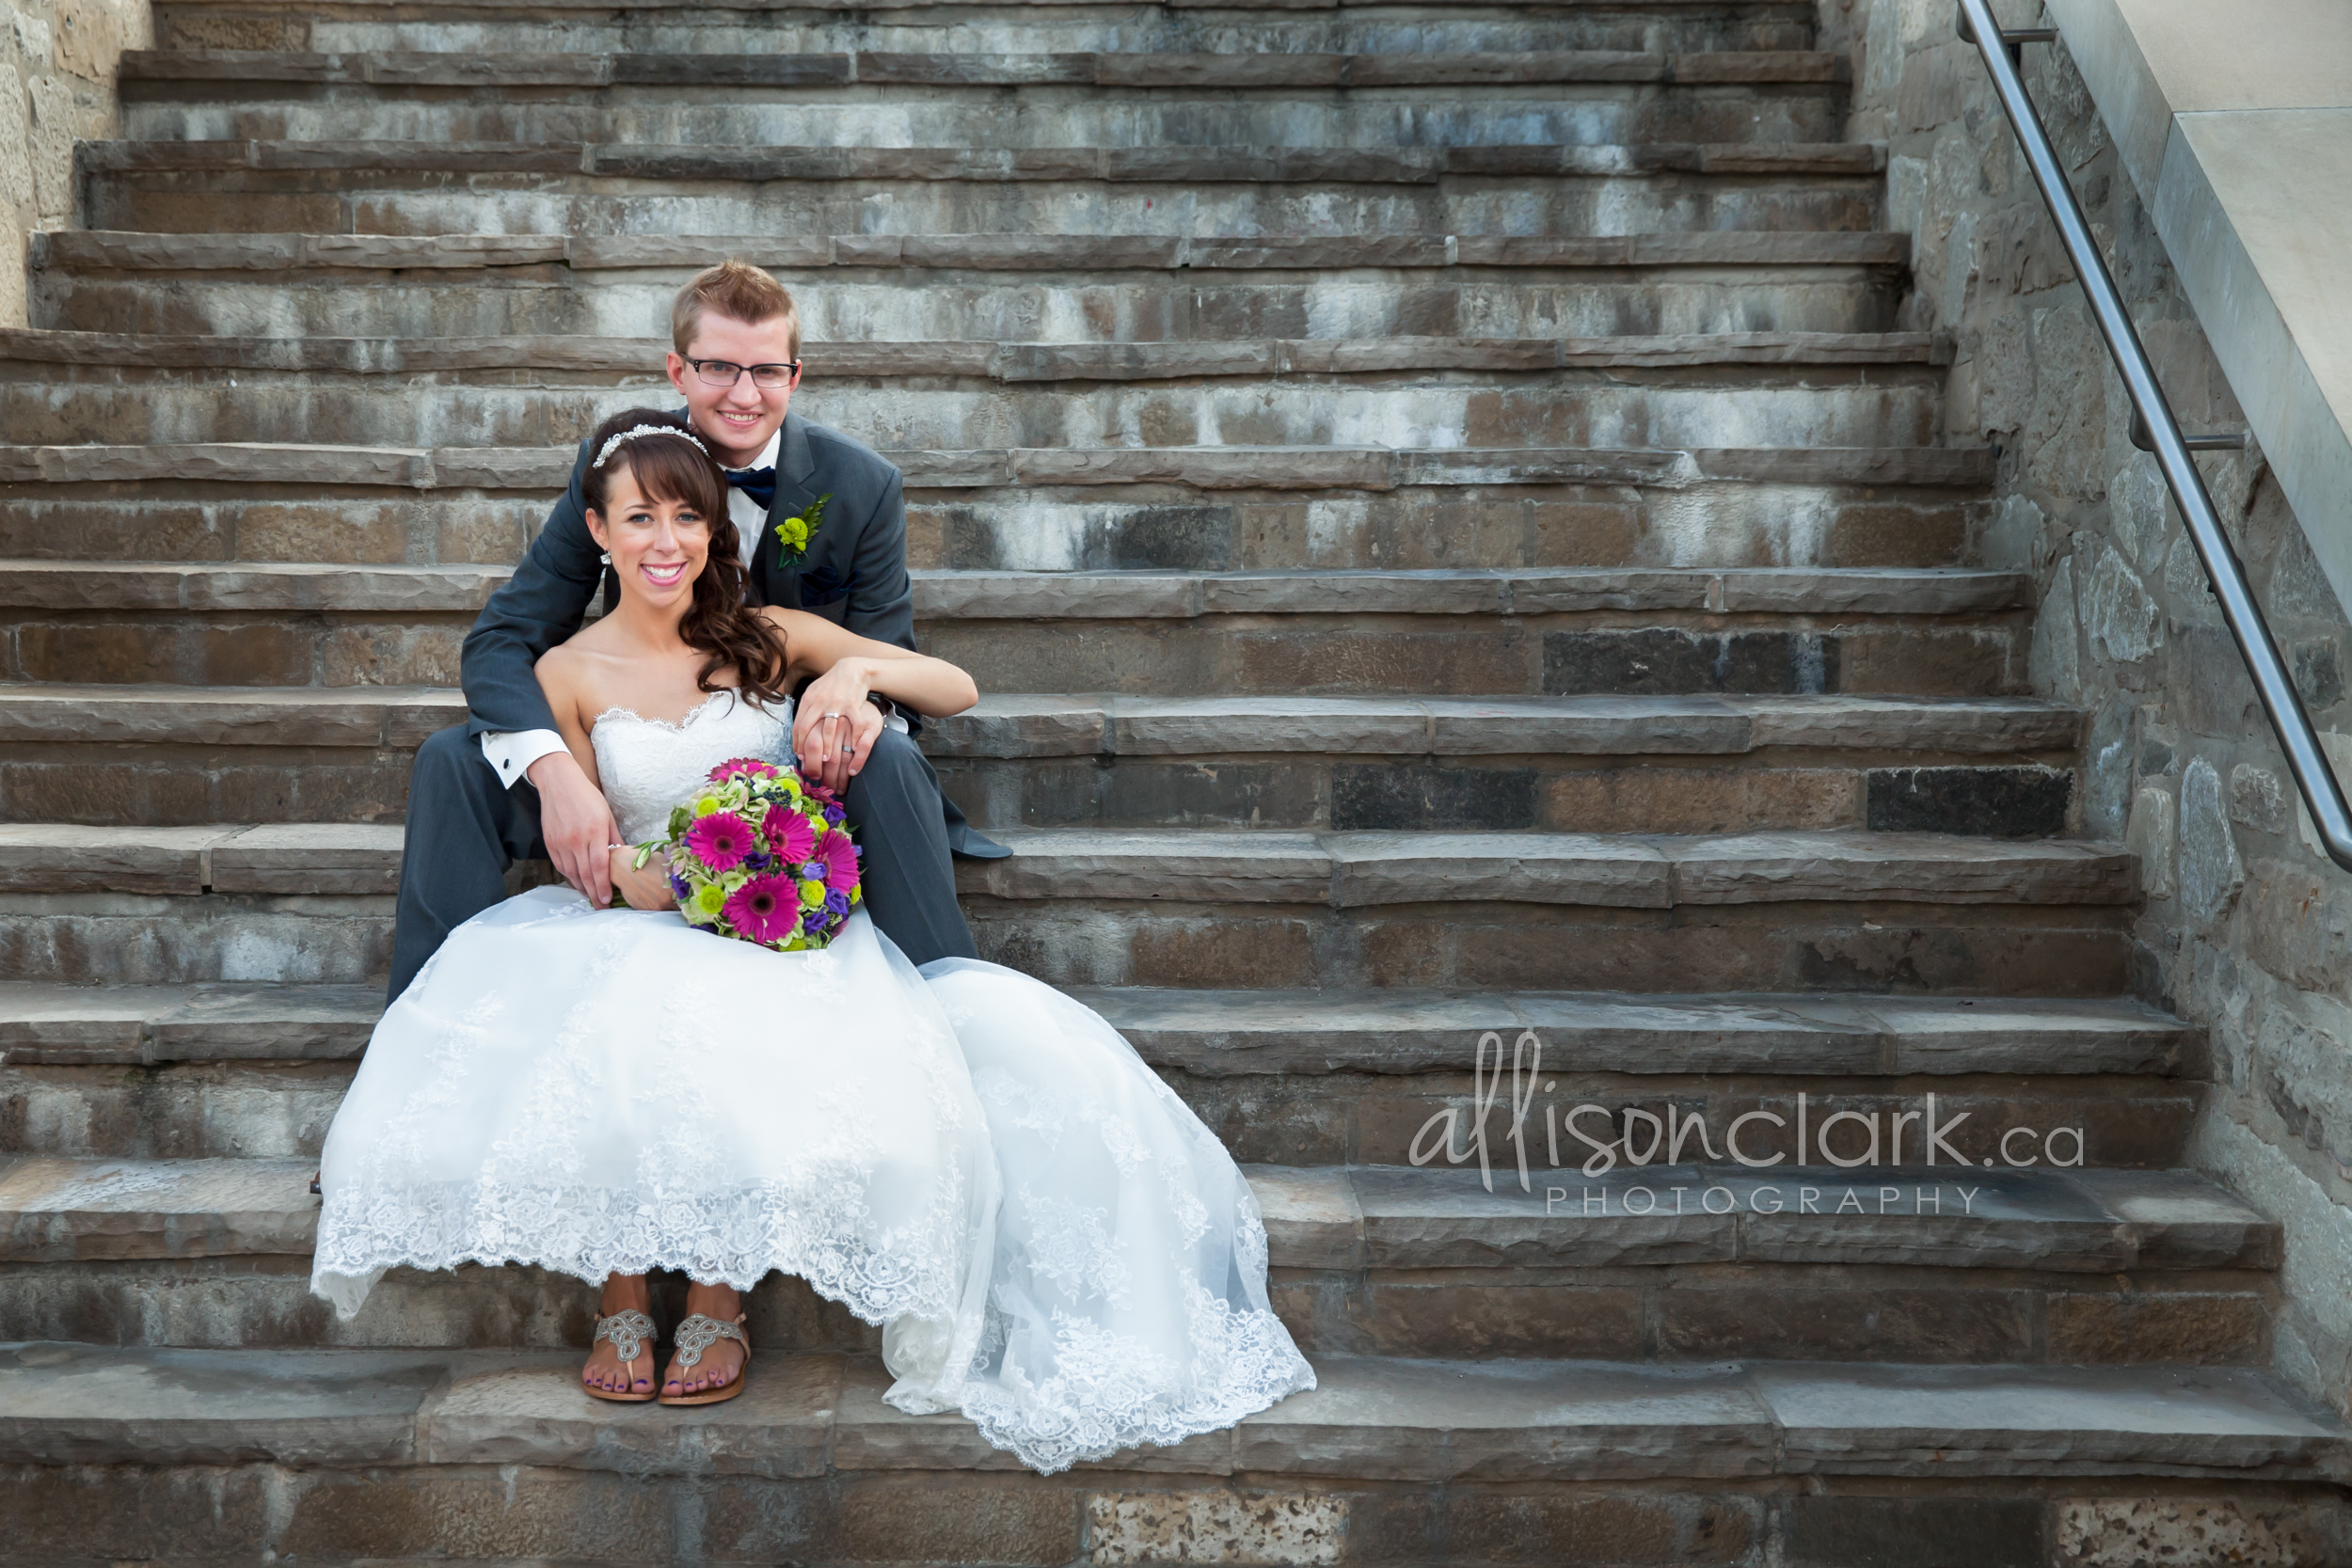 Wedding-AllisonClarkPhotography-3.jpg